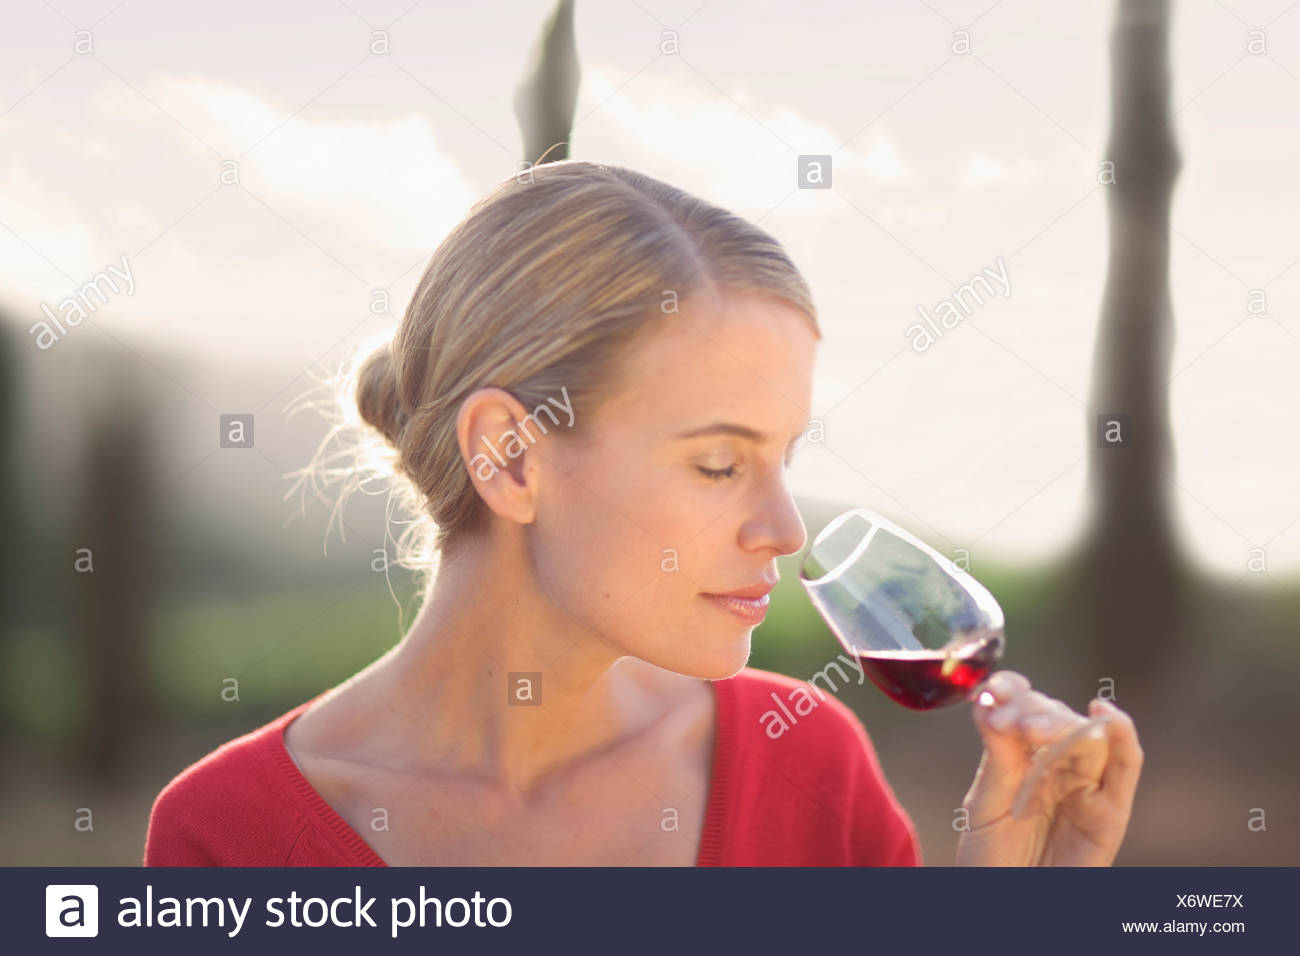 Woman enjoying a glass of red wine - Stock Image